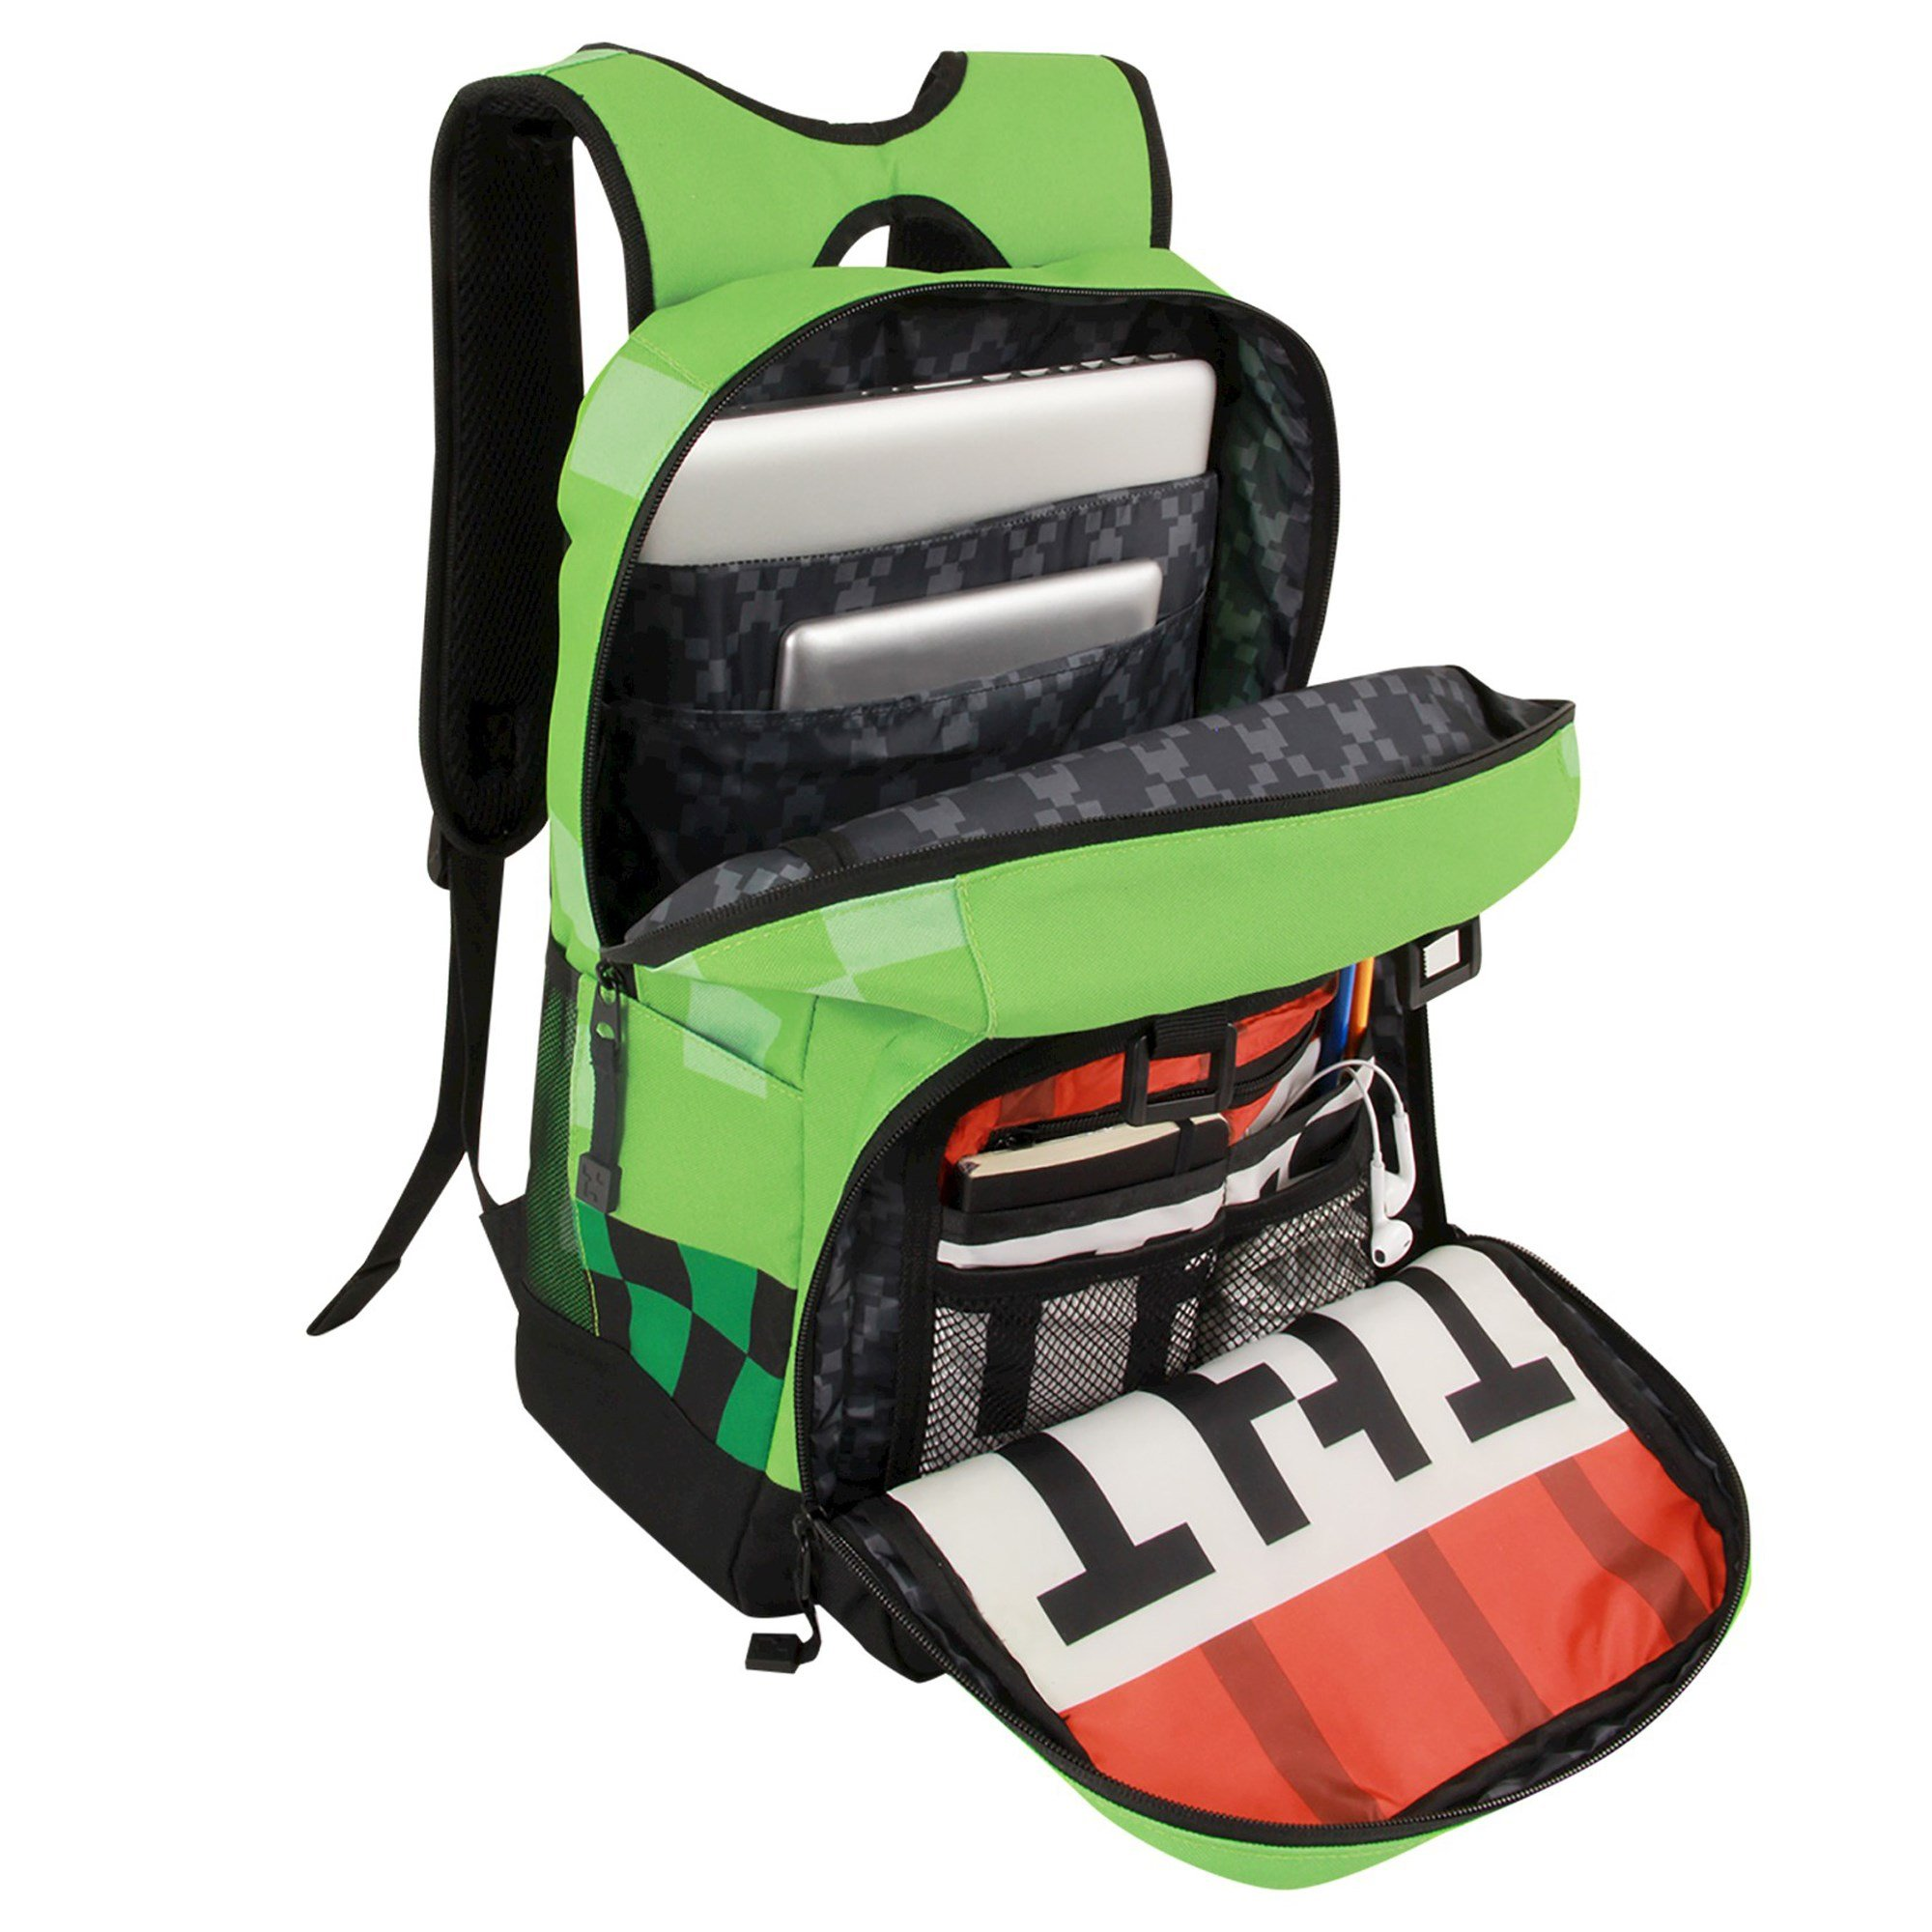 JINX Minecraft Creeper Kids Backpack (Green, 18'') for School, Camping, Travel, Outdoors & Fun by JINX (Image #3)